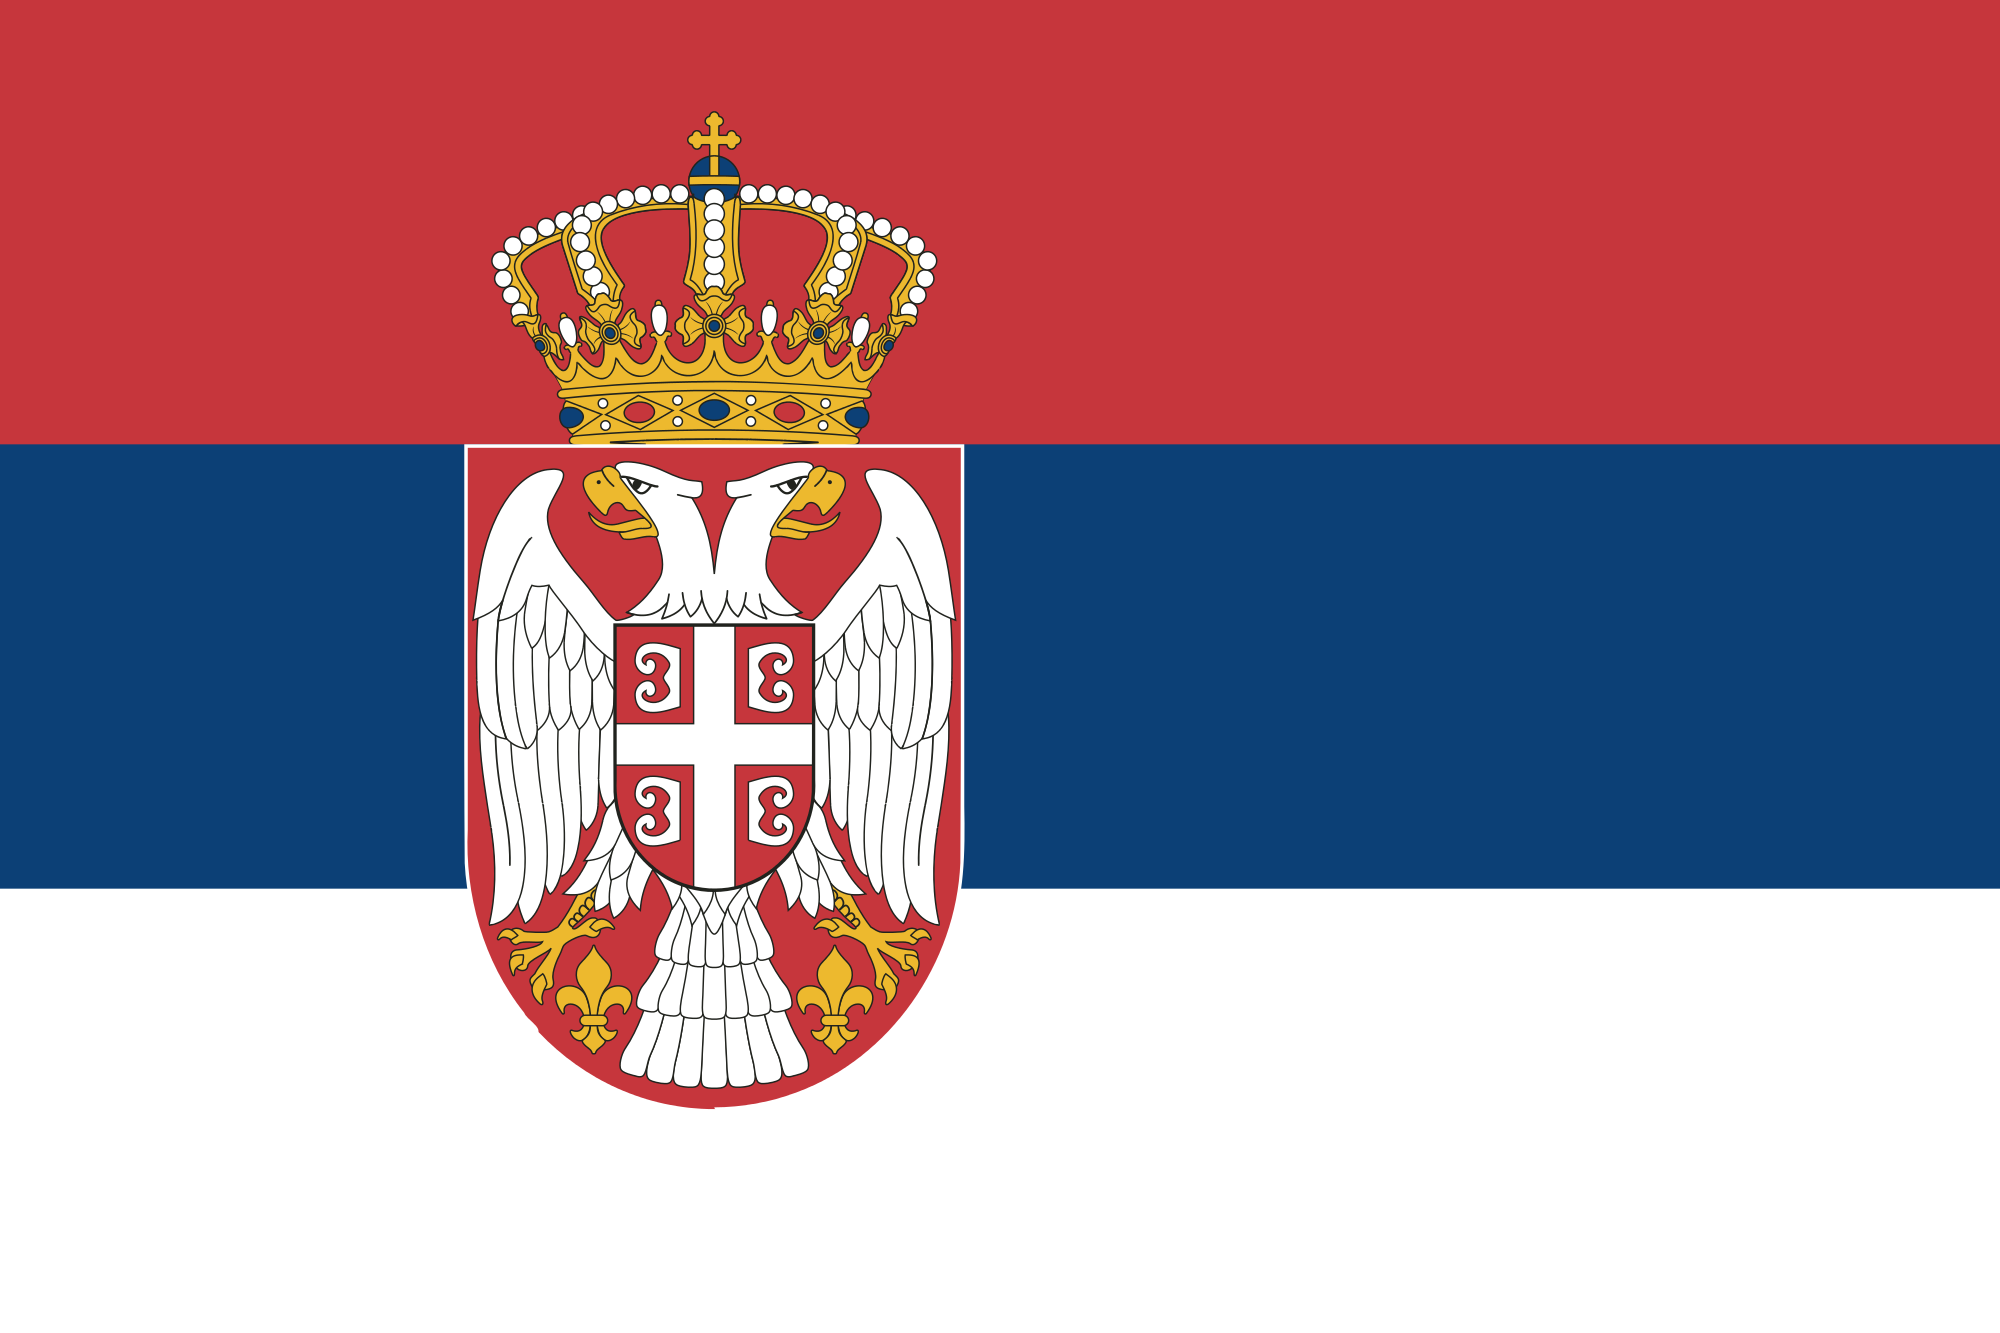 EMBASSY AND CONSULATE OF SERBIA